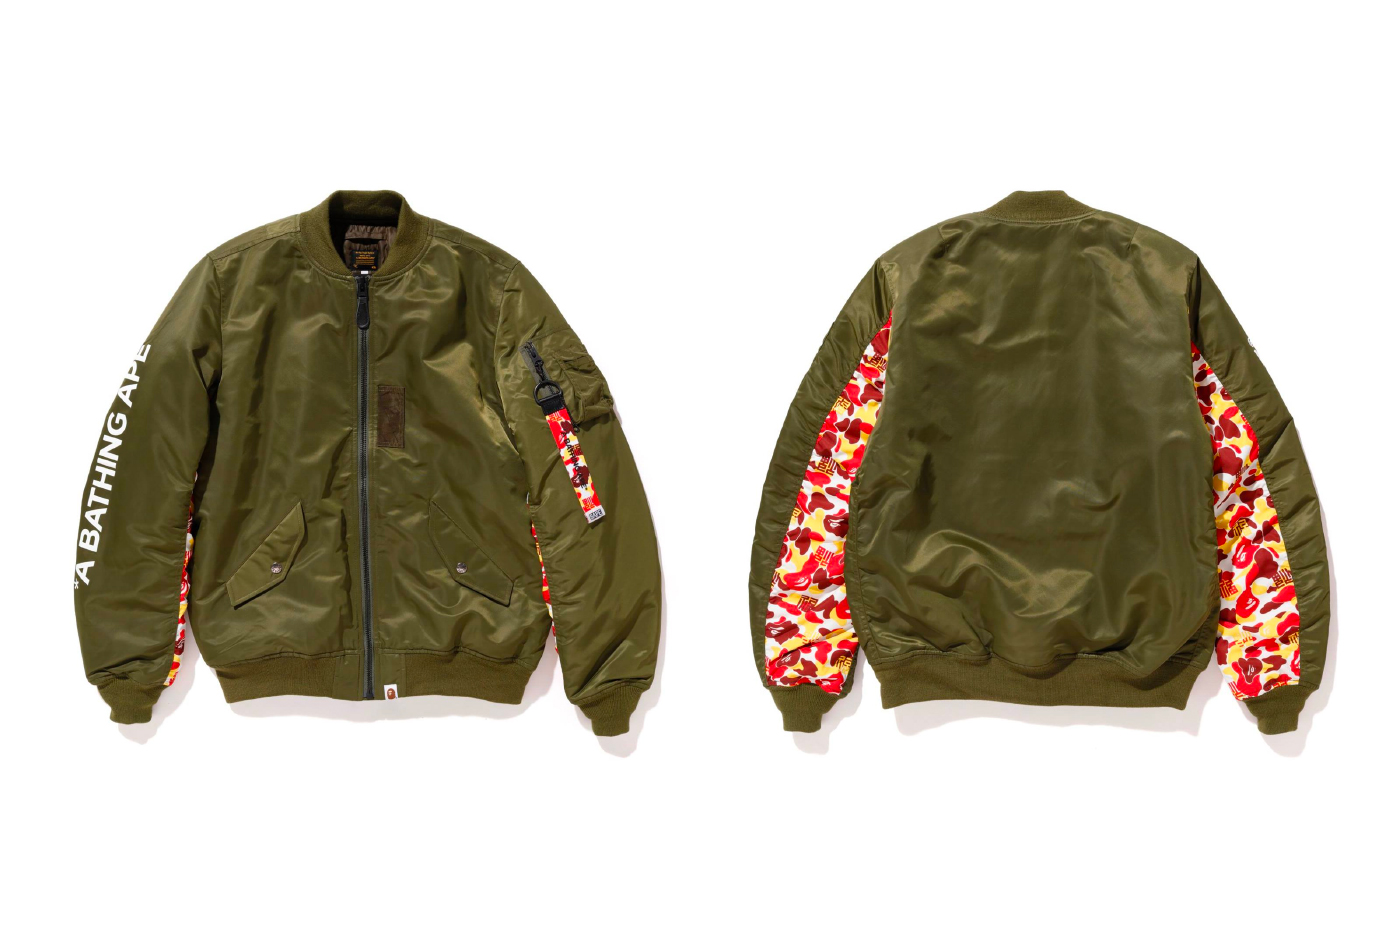 BAPE China 8th Anniversary Capsule